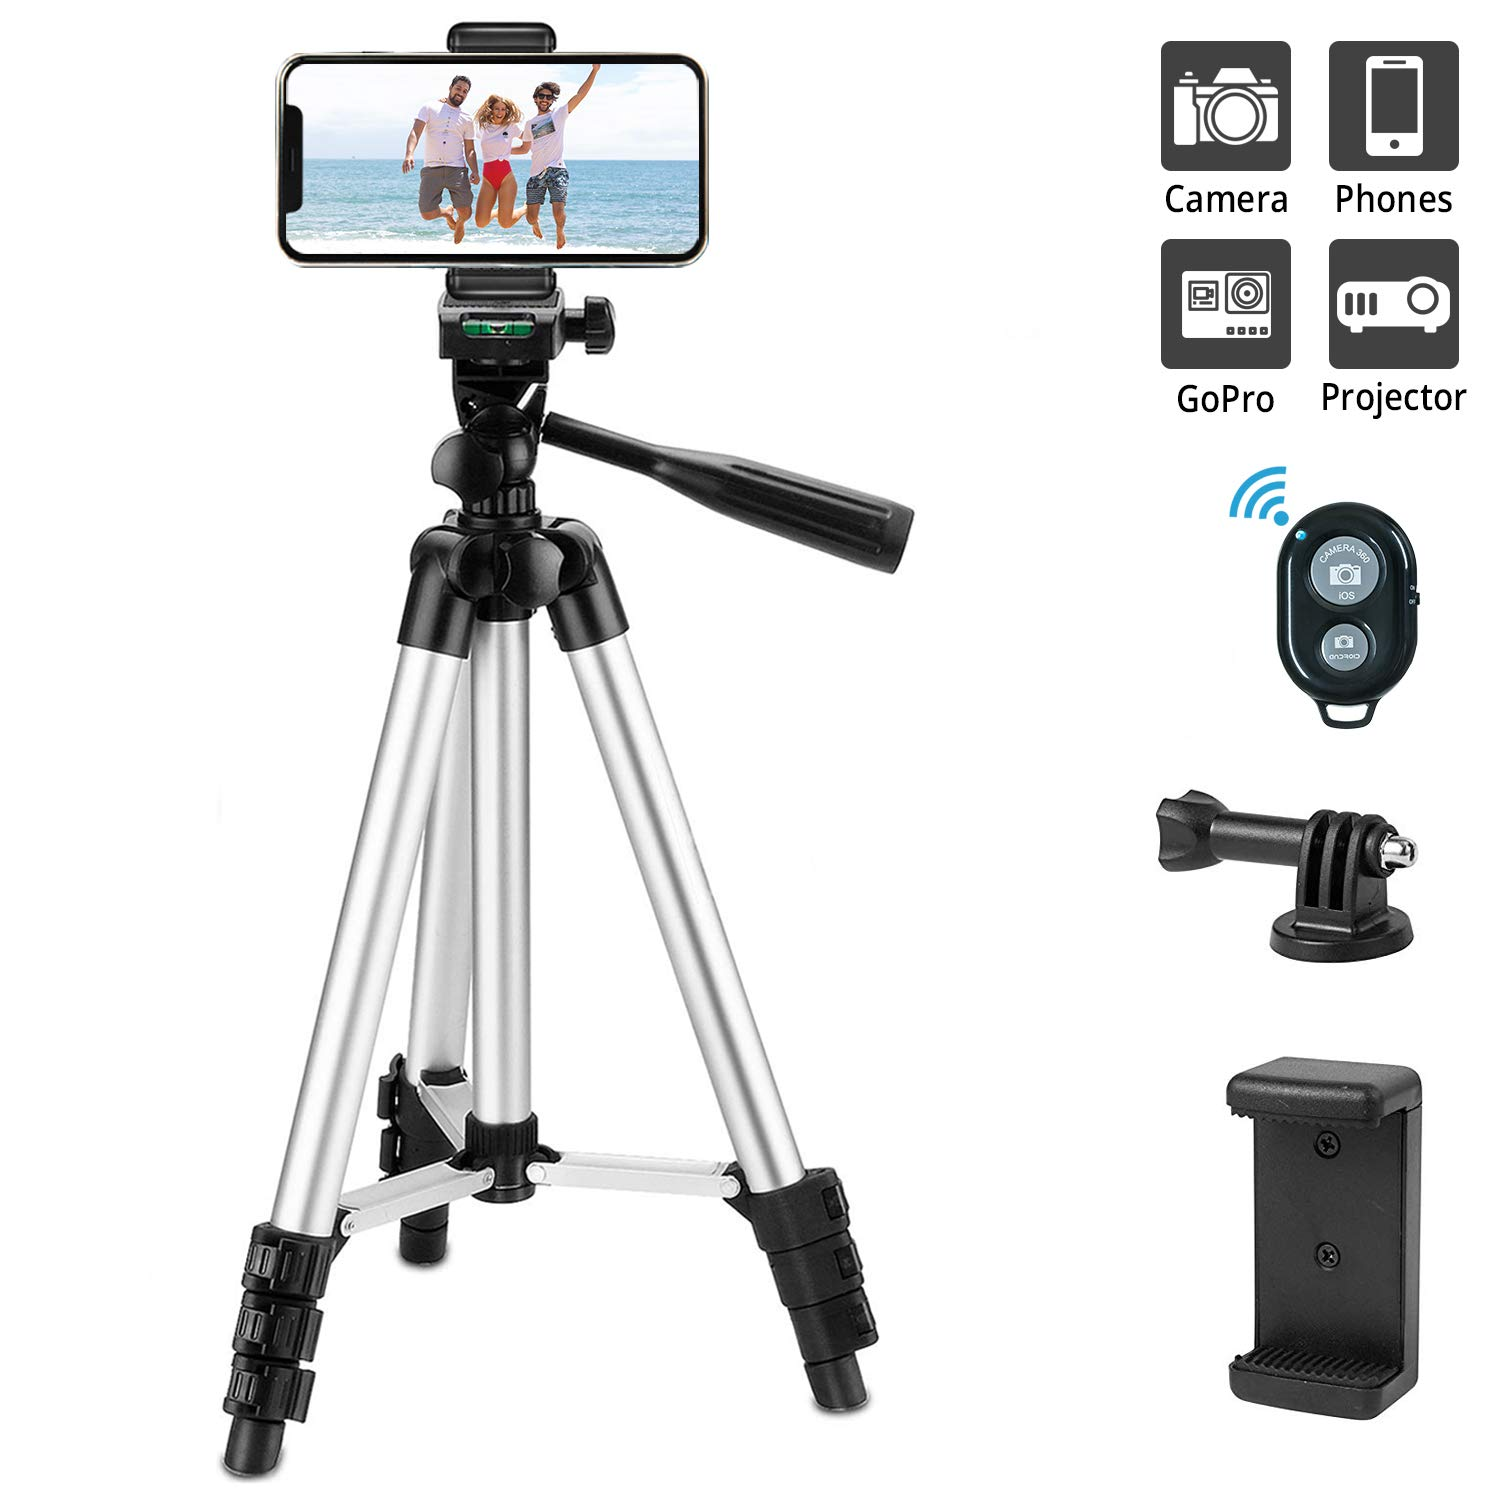 Projector etc. Phone Tripod Extendable Wireless Remote Control Smartphone Video Tripod Handheld Selfie Stick Tripod for DSLR Camera Smartphone